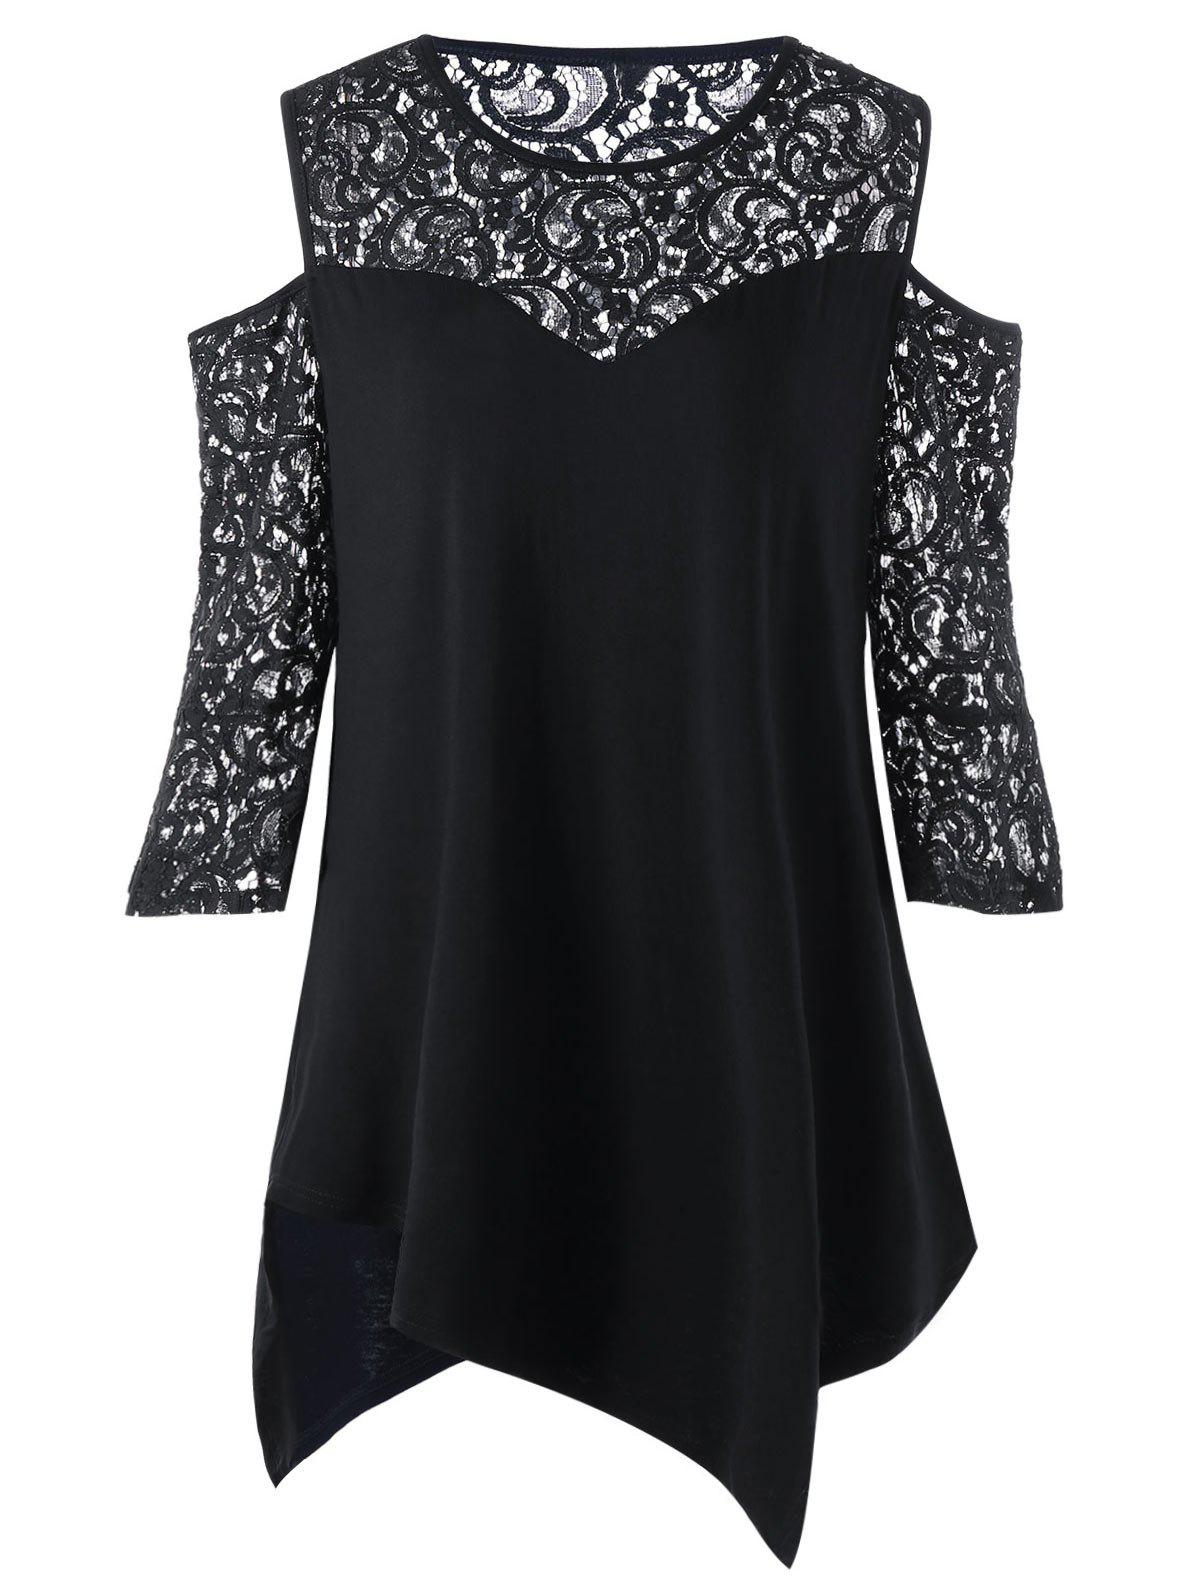 Plus Size Lace Panel Cold Shoulder BlouseWOMEN<br><br>Size: 3XL; Color: BLACK; Material: Rayon,Spandex; Shirt Length: Long; Sleeve Length: Half; Collar: Round Neck; Style: Fashion; Season: Summer; Pattern Type: Others; Weight: 0.3000kg; Package Contents: 1 x Blouse;